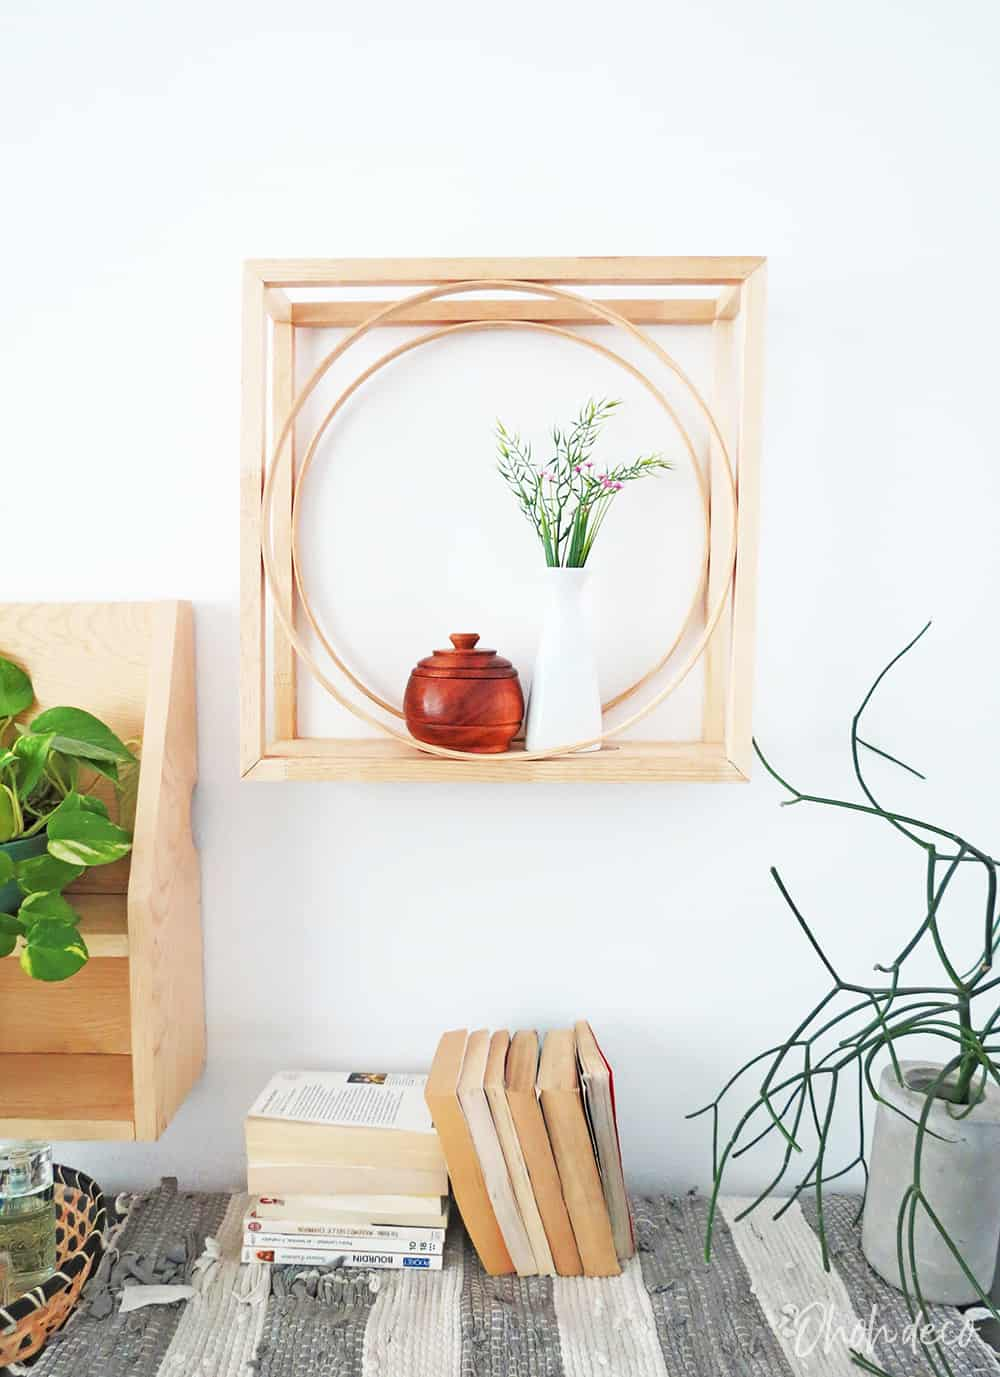 DIY Geometric display shelf